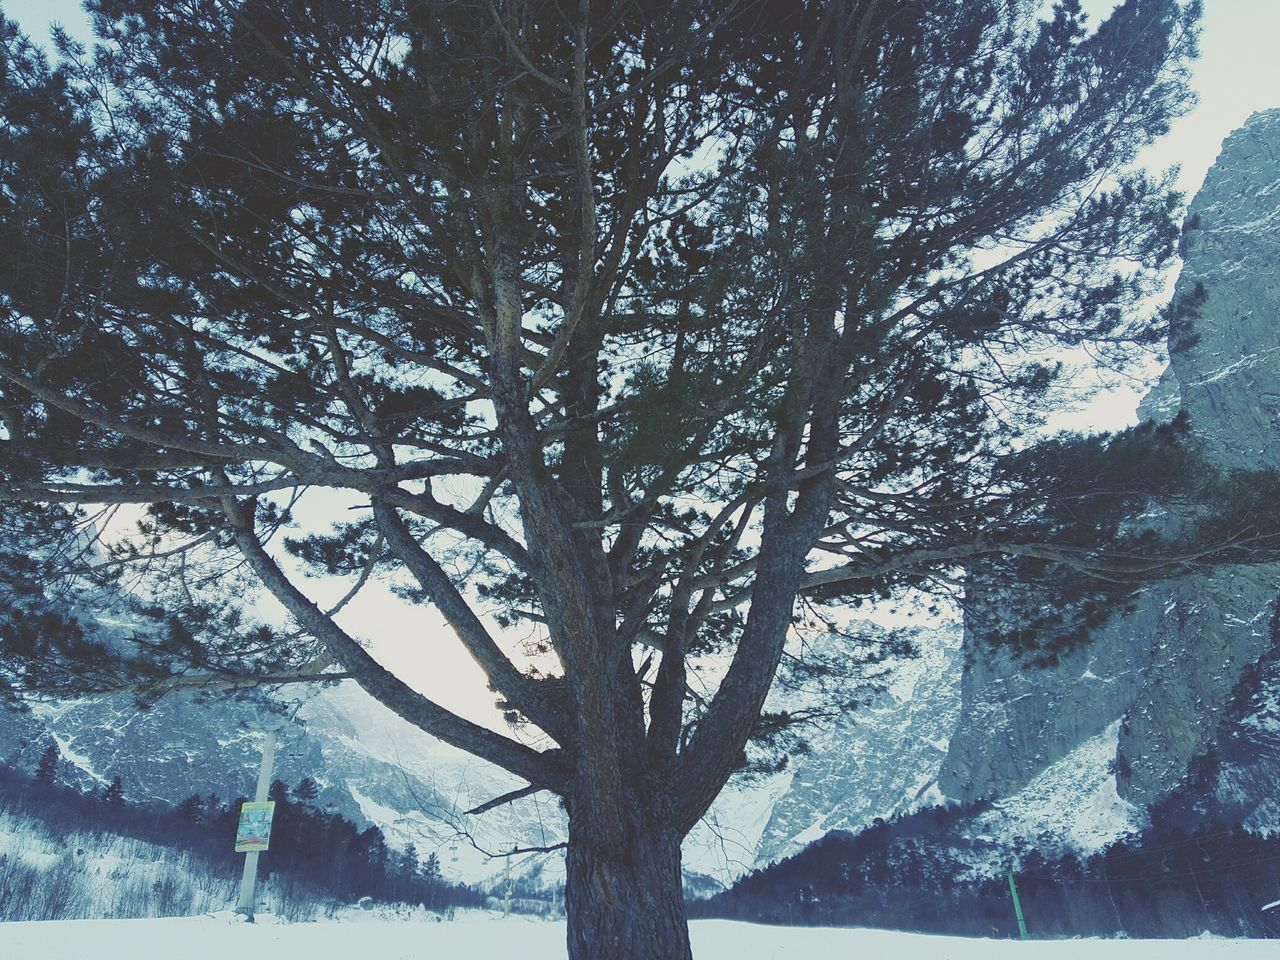 tree, nature, snow, beauty in nature, tranquility, winter, scenics, tree trunk, branch, outdoors, tranquil scene, day, cold temperature, mountain, landscape, sky, growth, no people